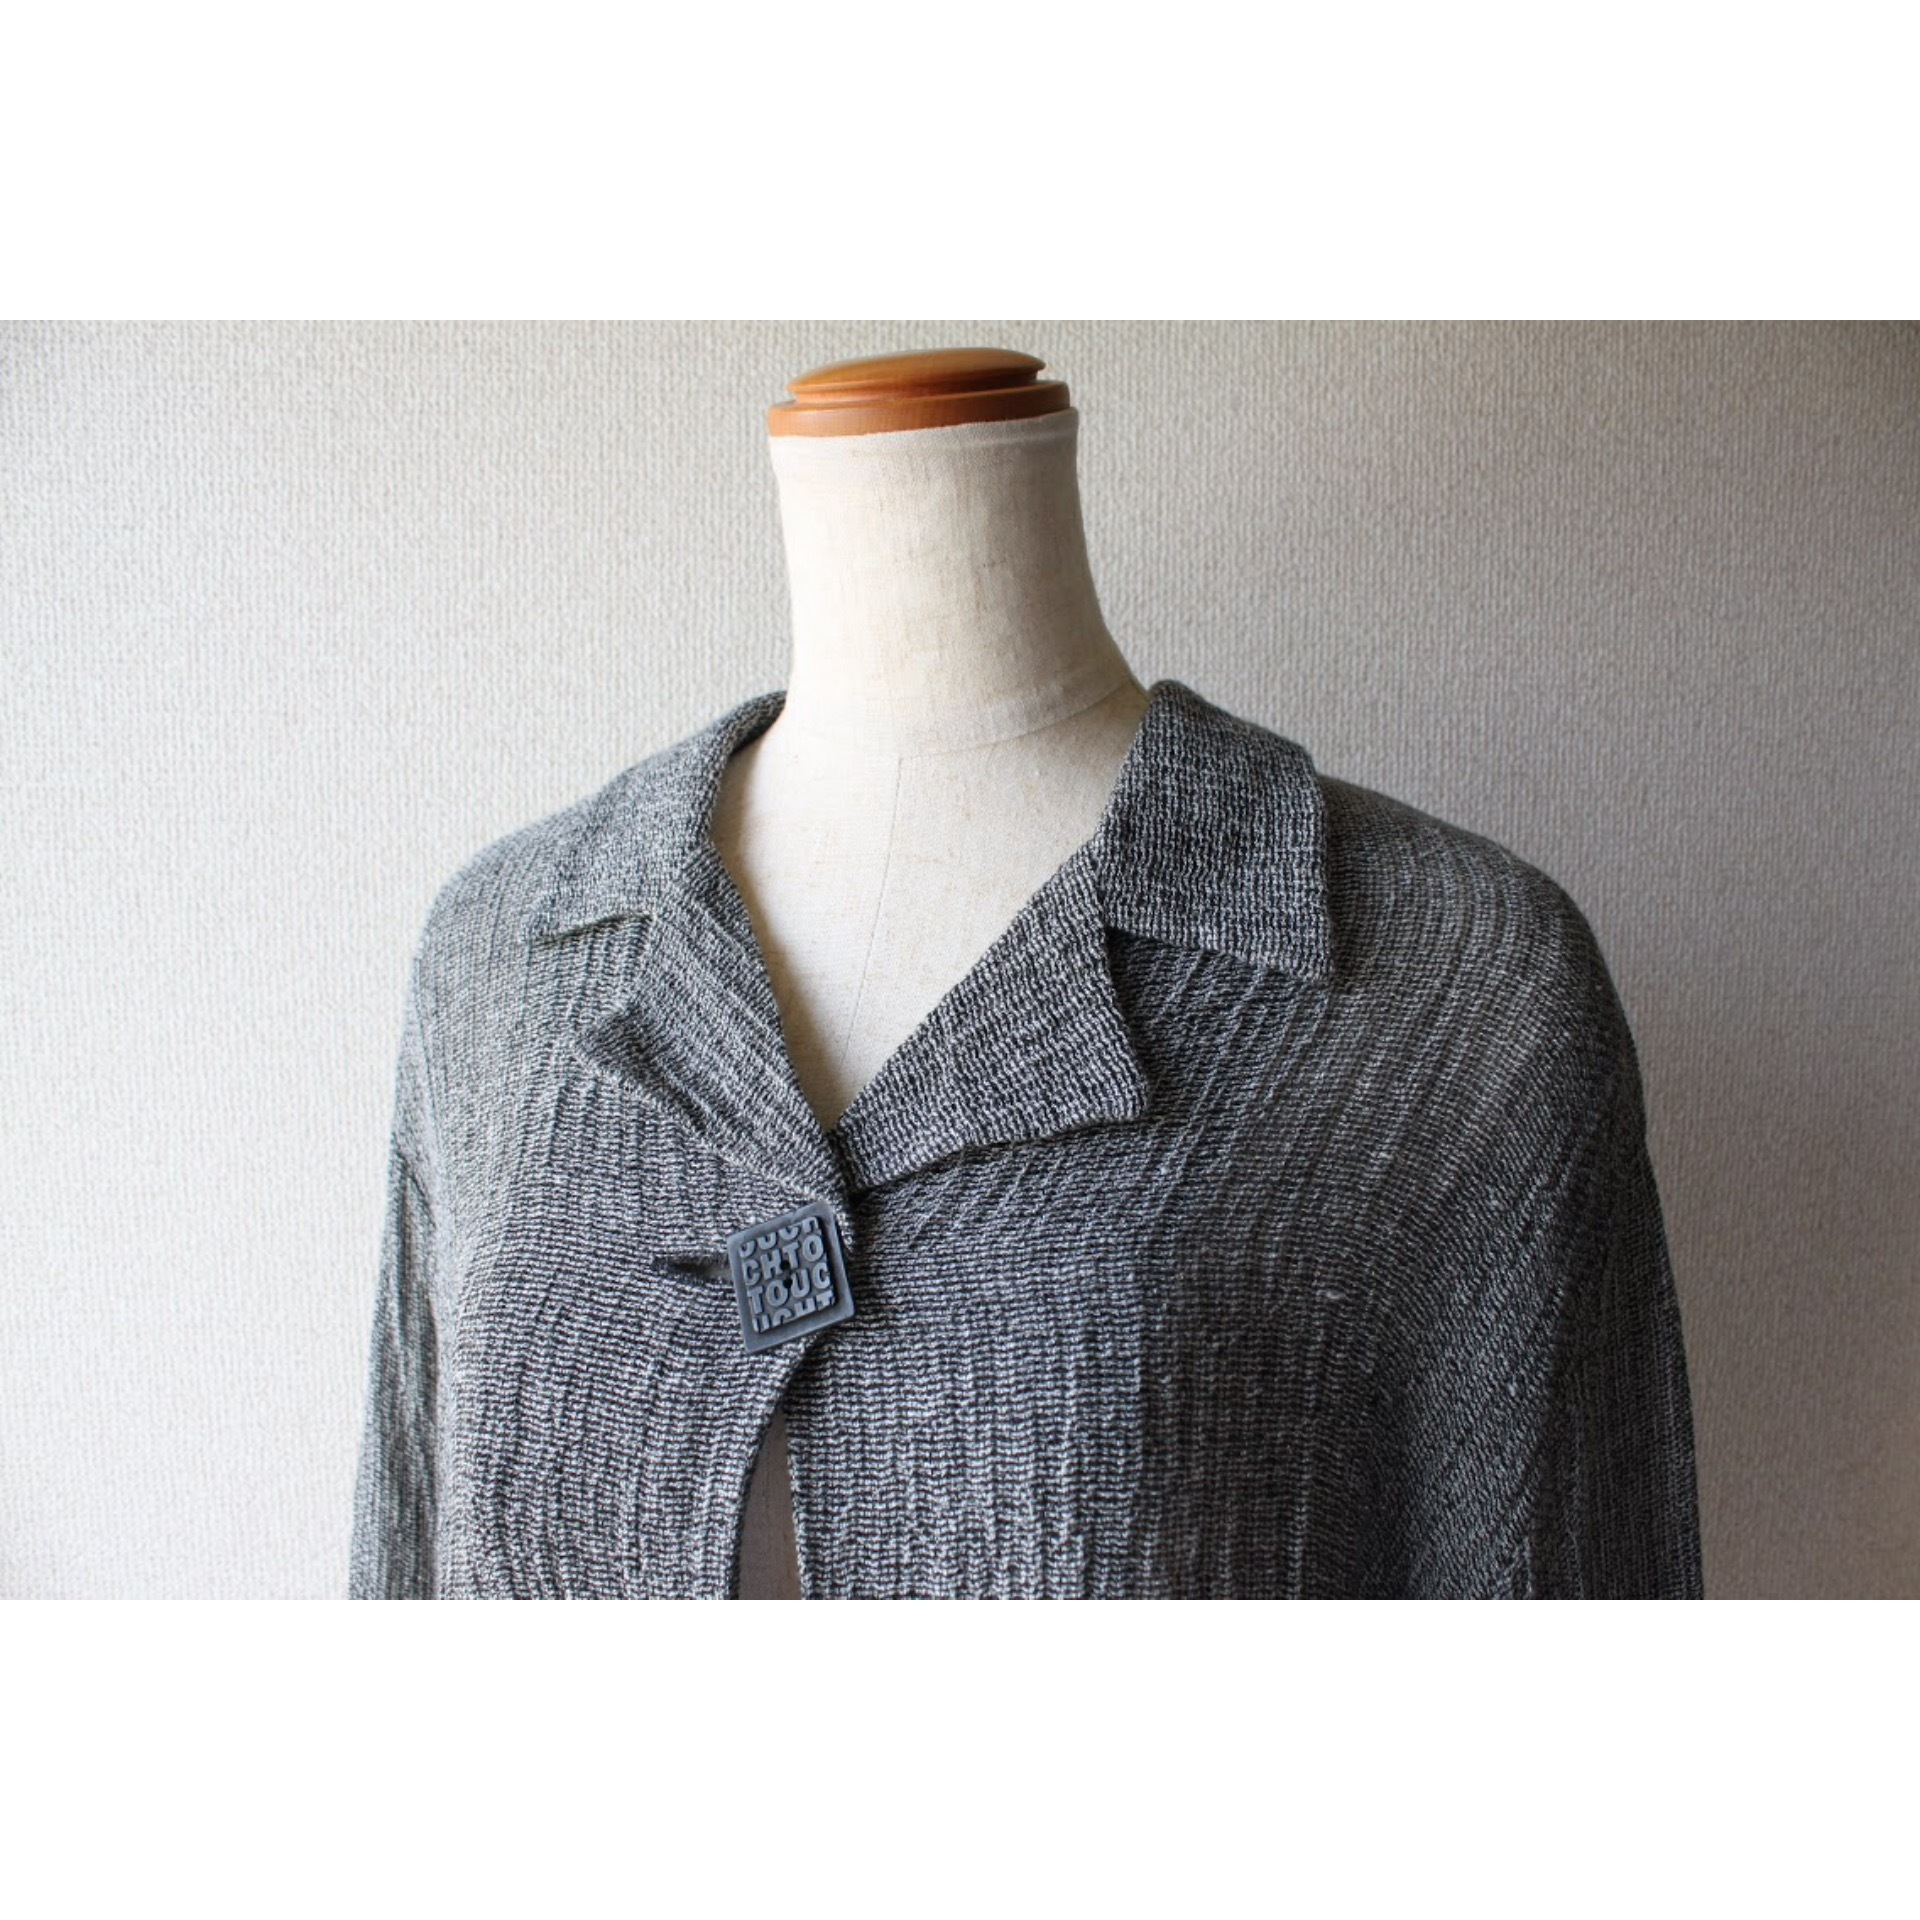 Vintage linen short length jacket